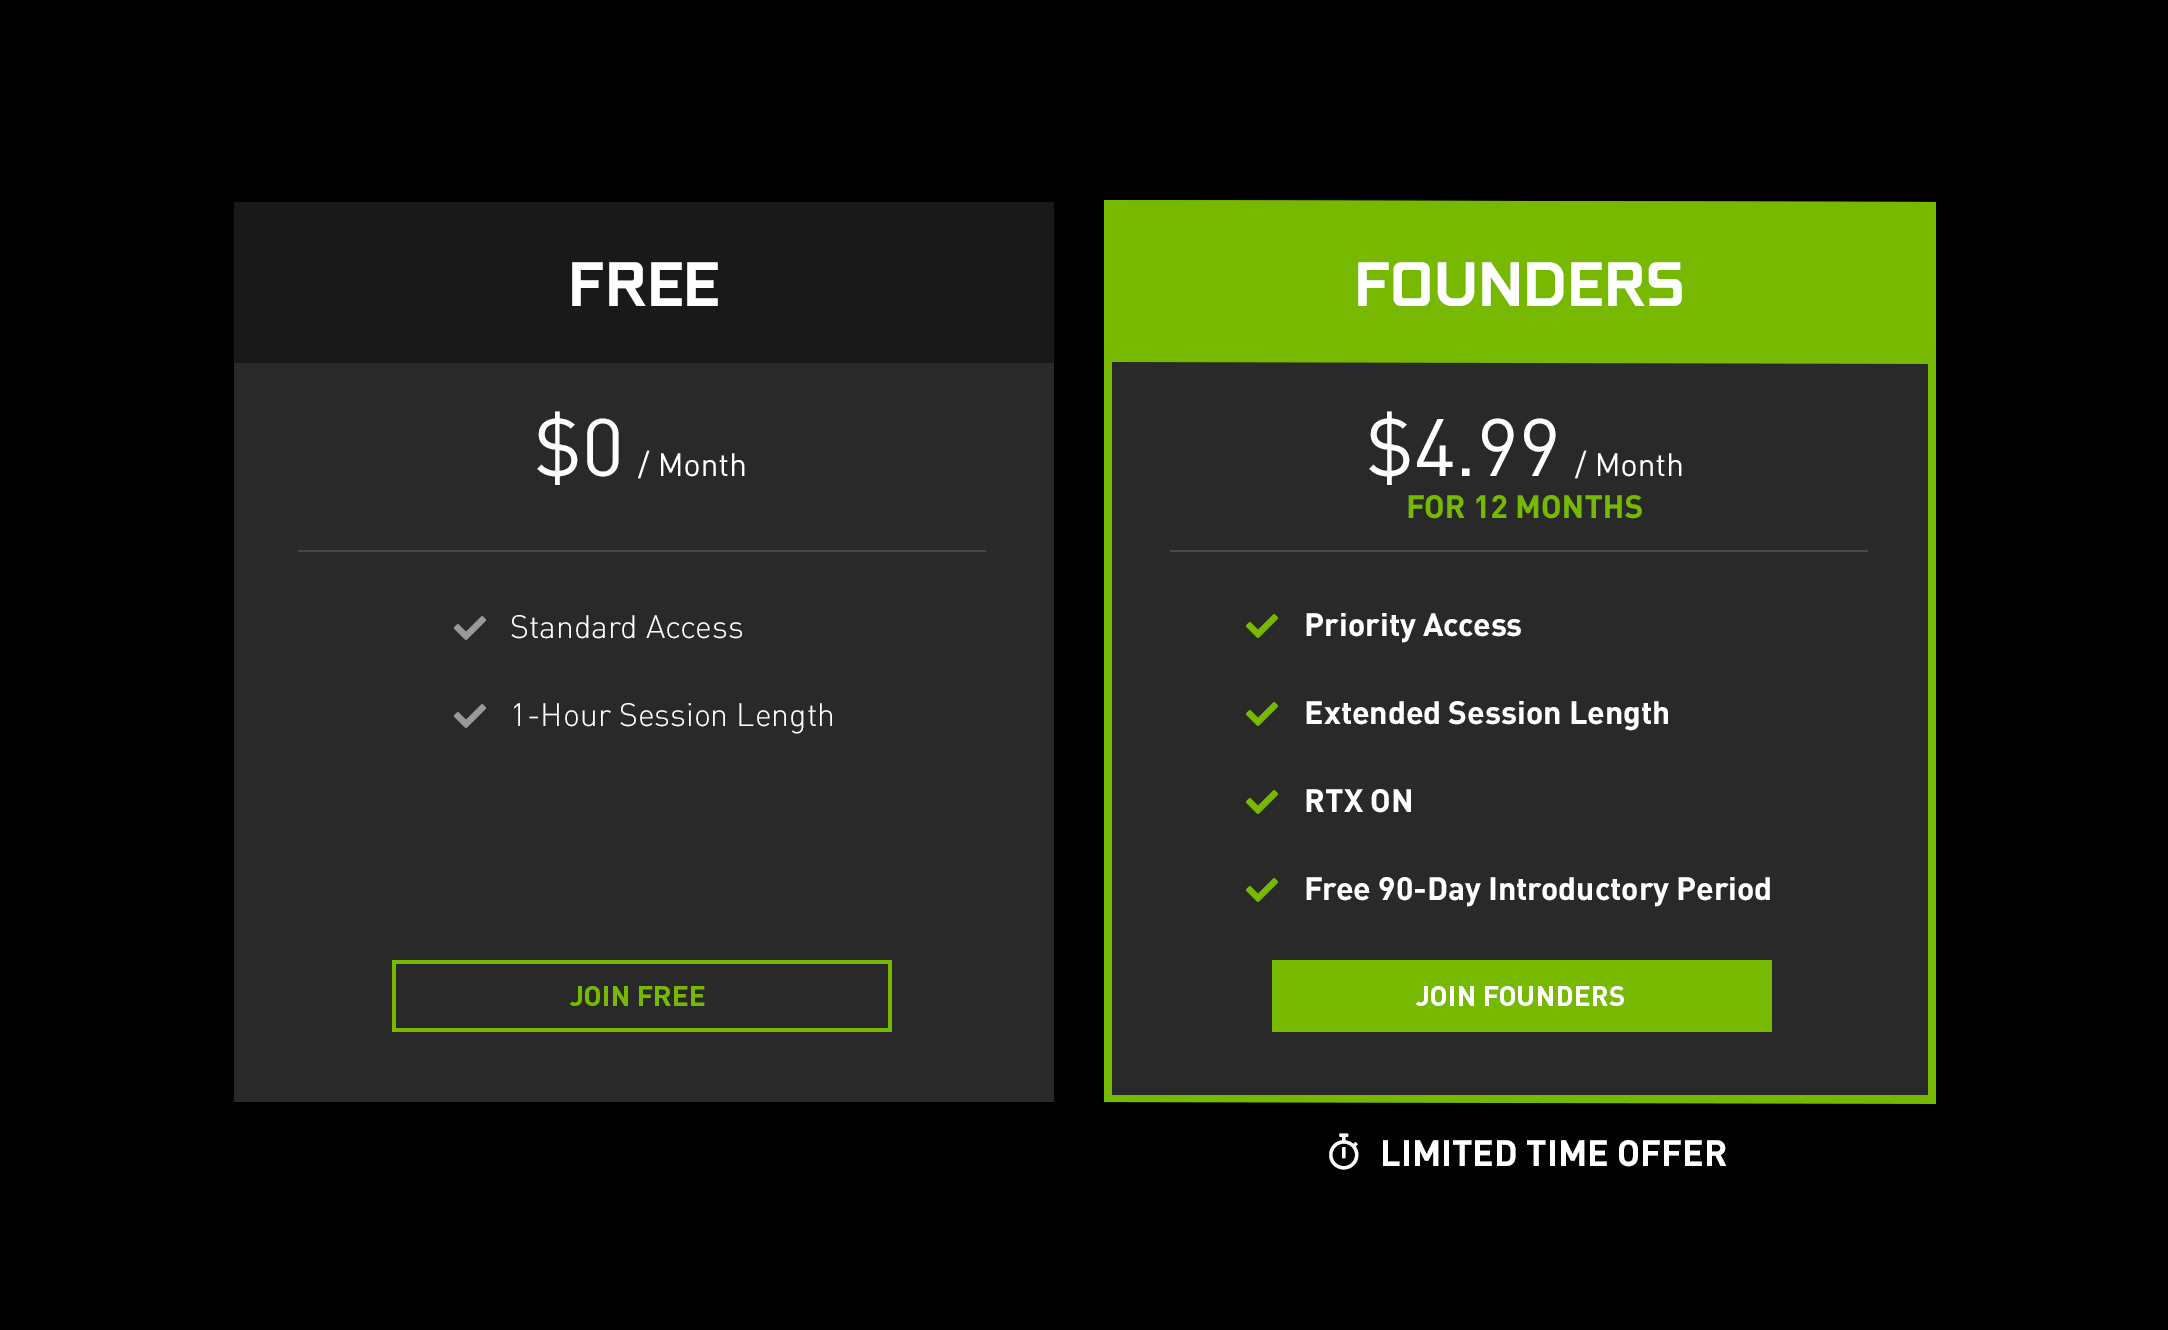 nvidia geforce now pricing